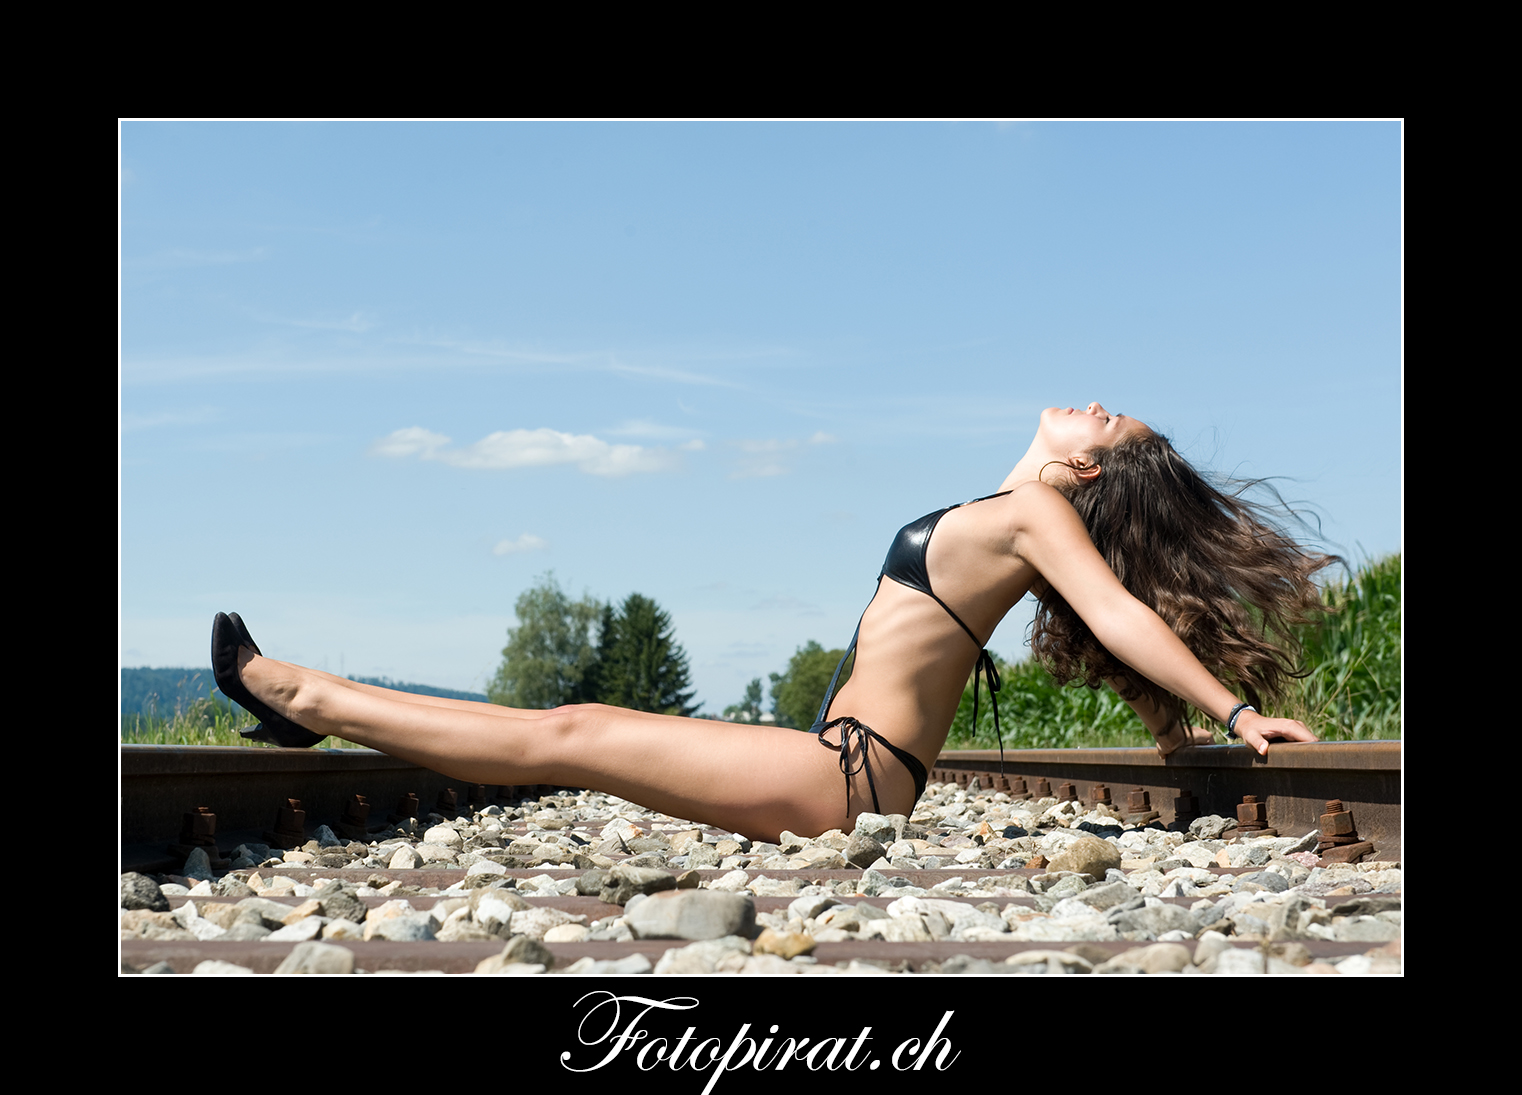 Fotoshooting, On Location, Monokini, Modelagentur, Fotomodel, Sportmodel,